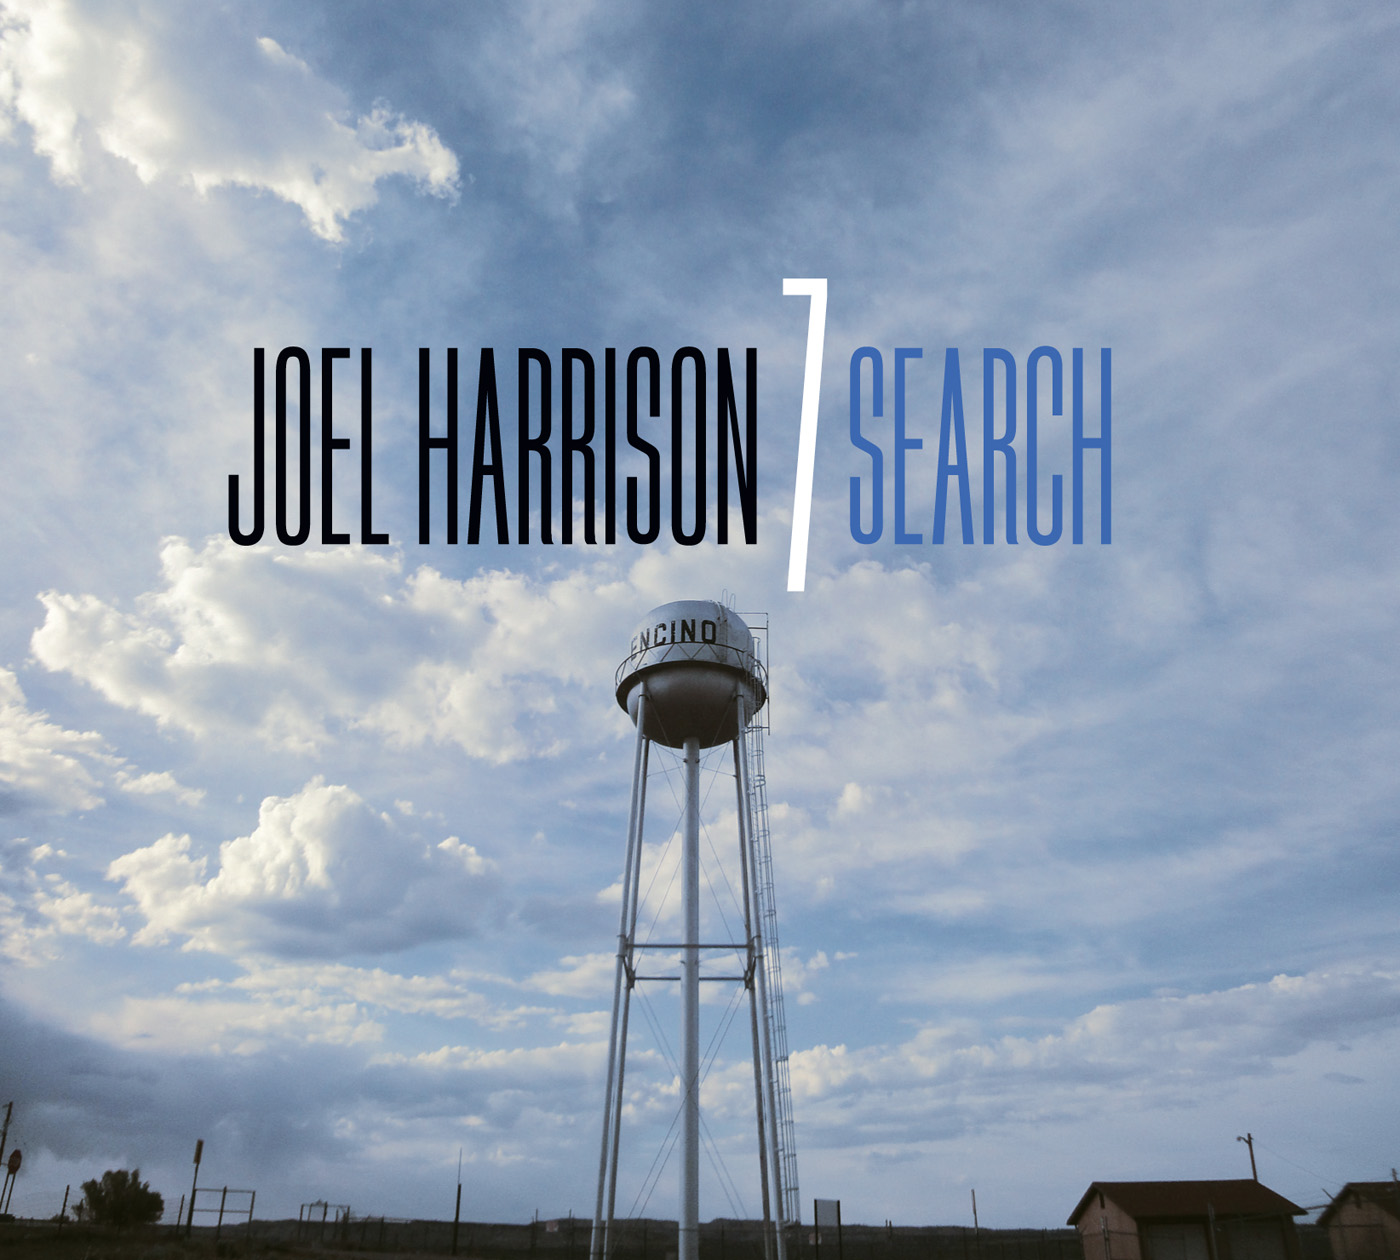 Search by Joel Harrison cover